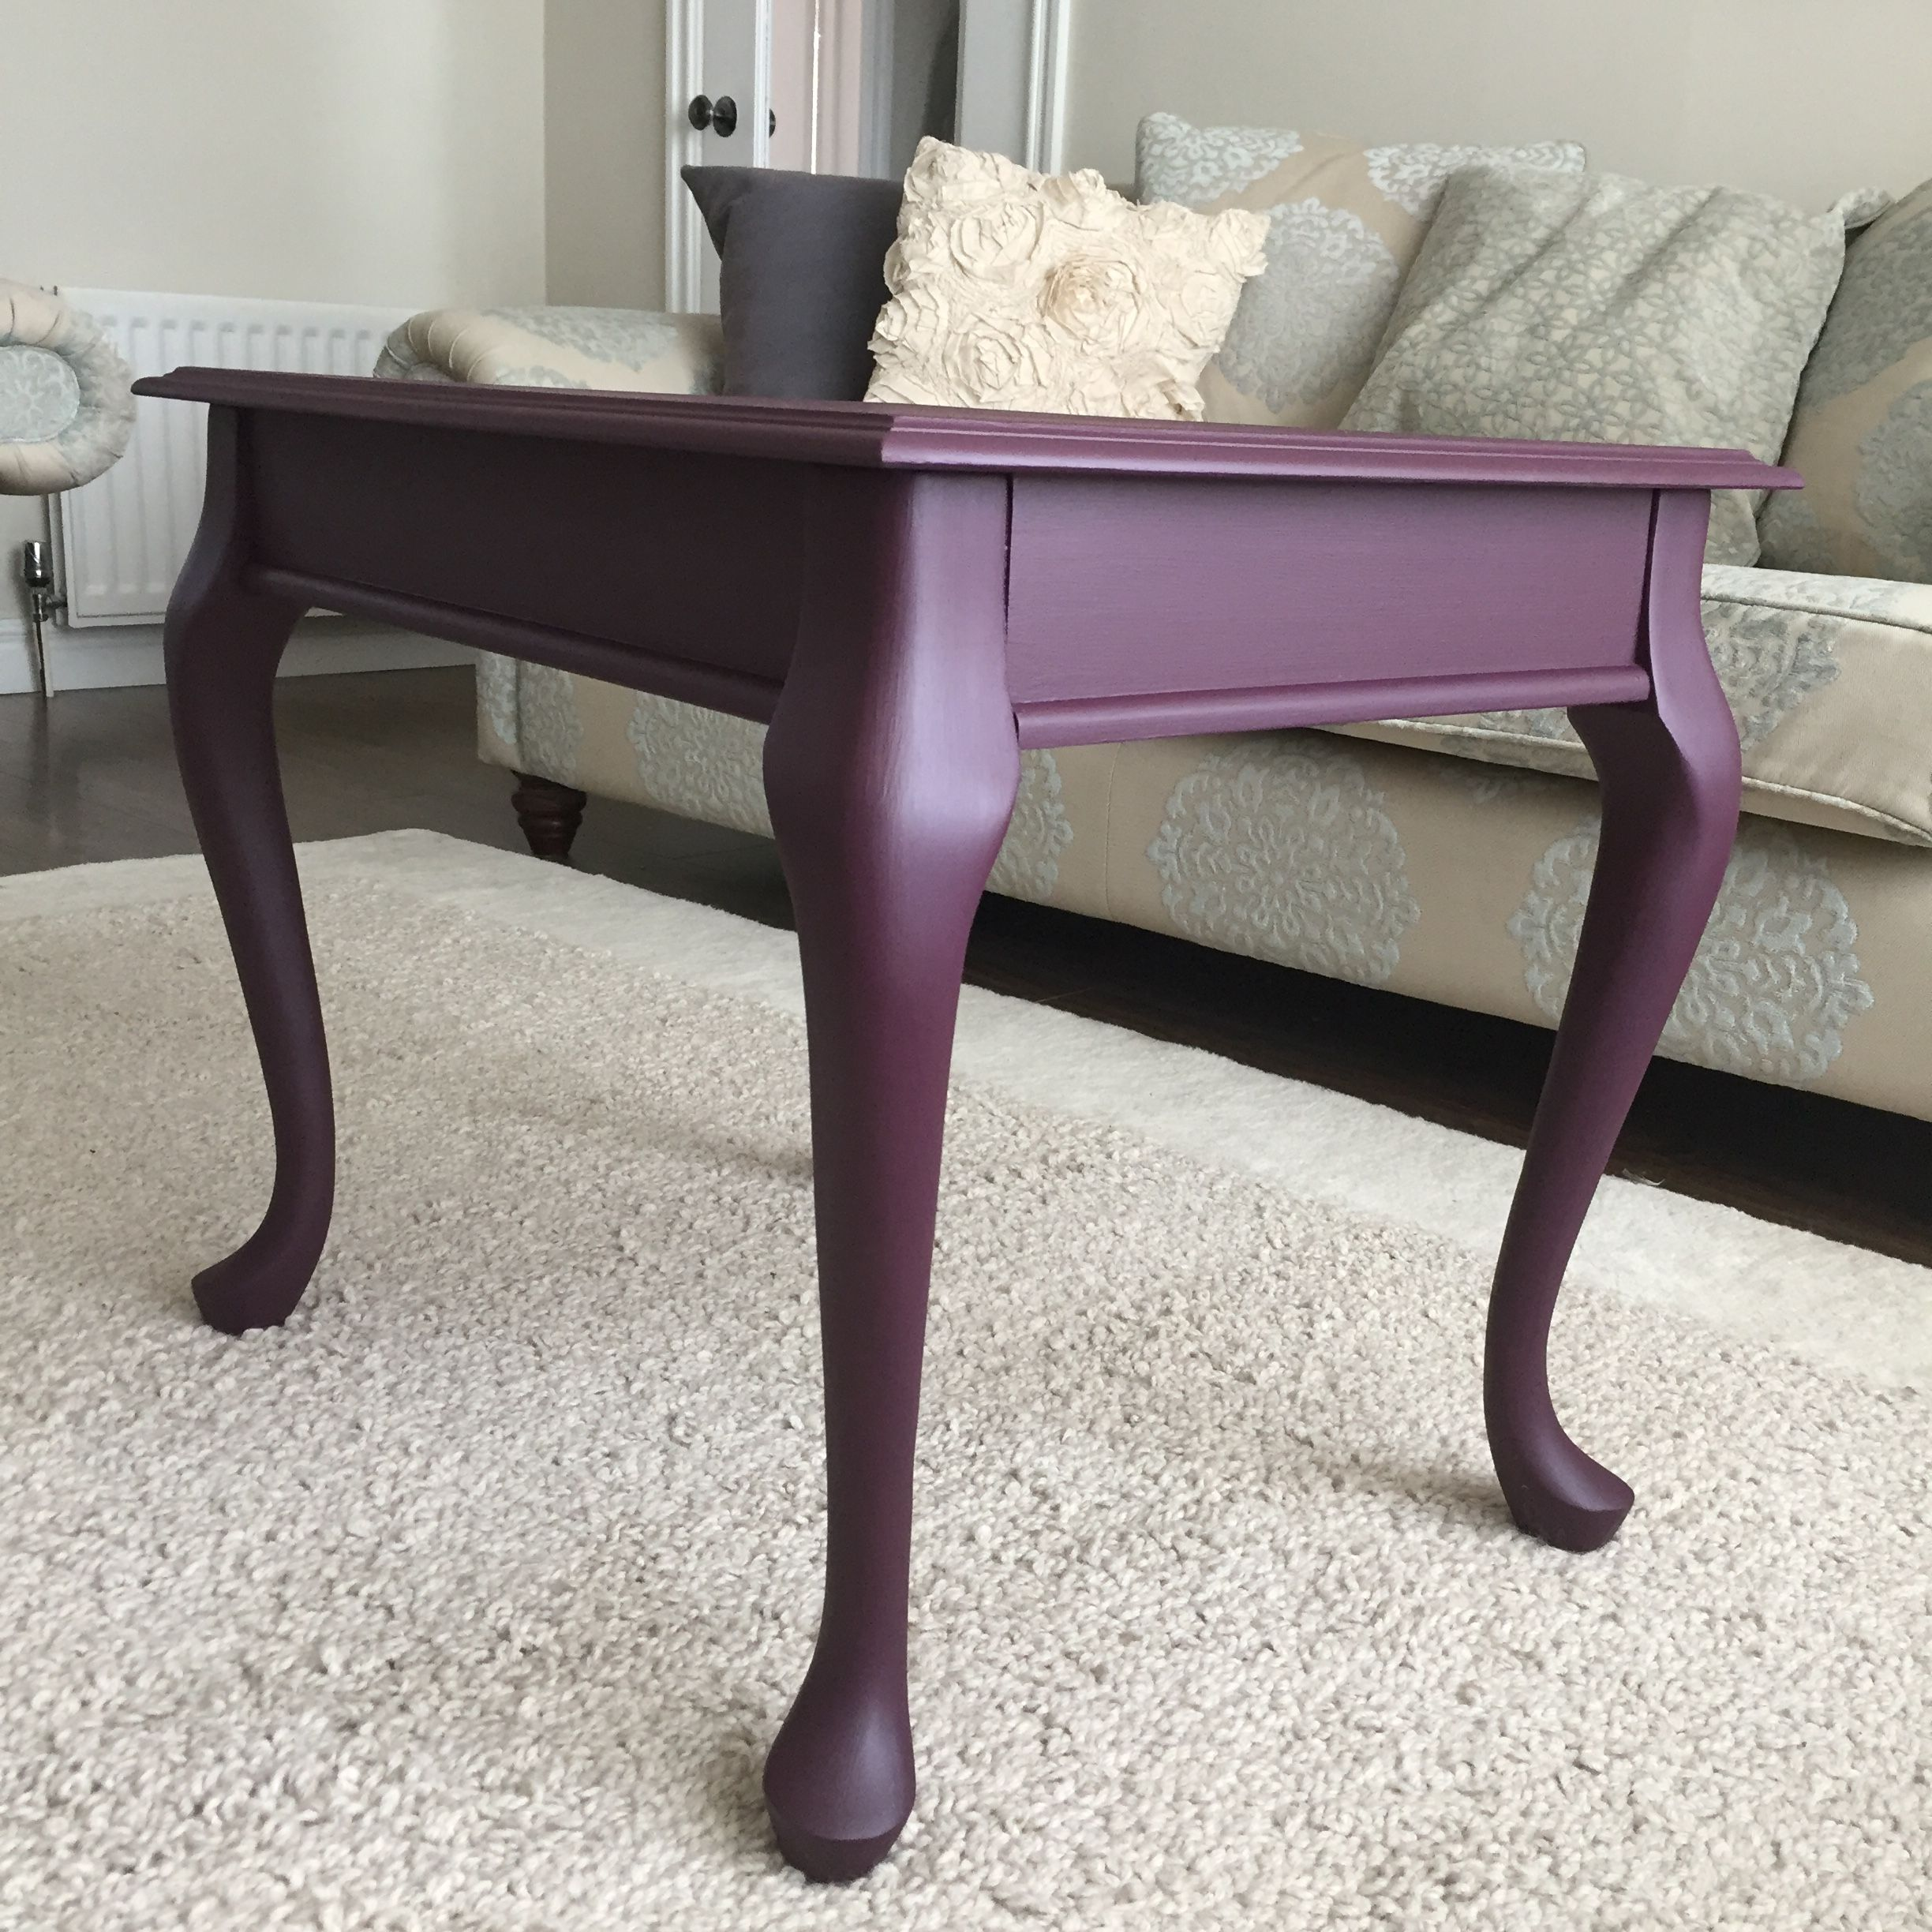 Up-cycled and Reloved by Jo using Autentico Versante Plum. Love it :)